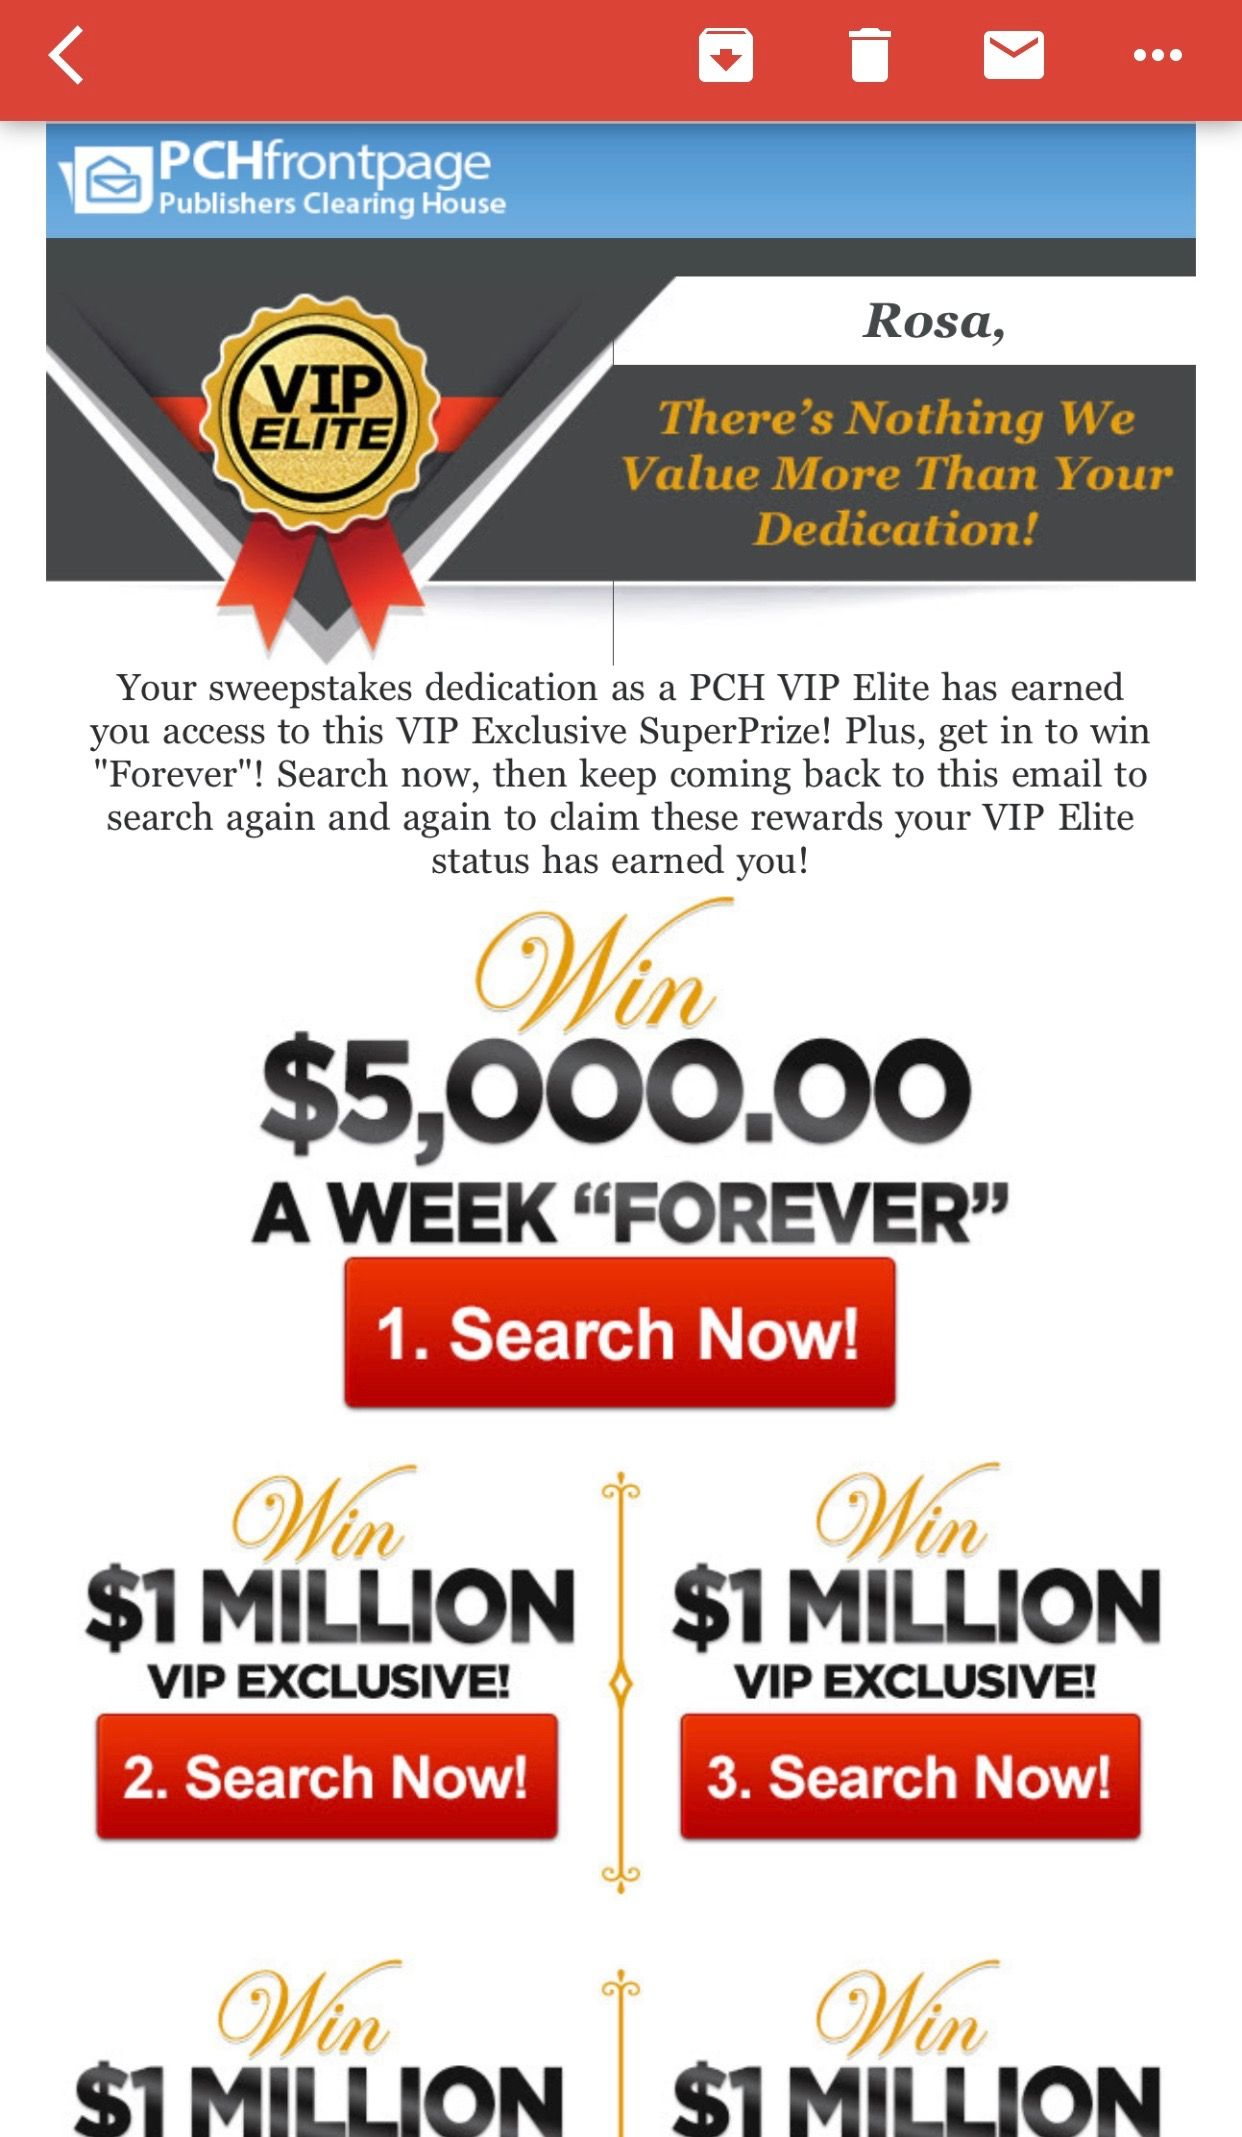 PCHFRONTPAGE VIP Exclusive SuperPrize I RRojas Claim my user